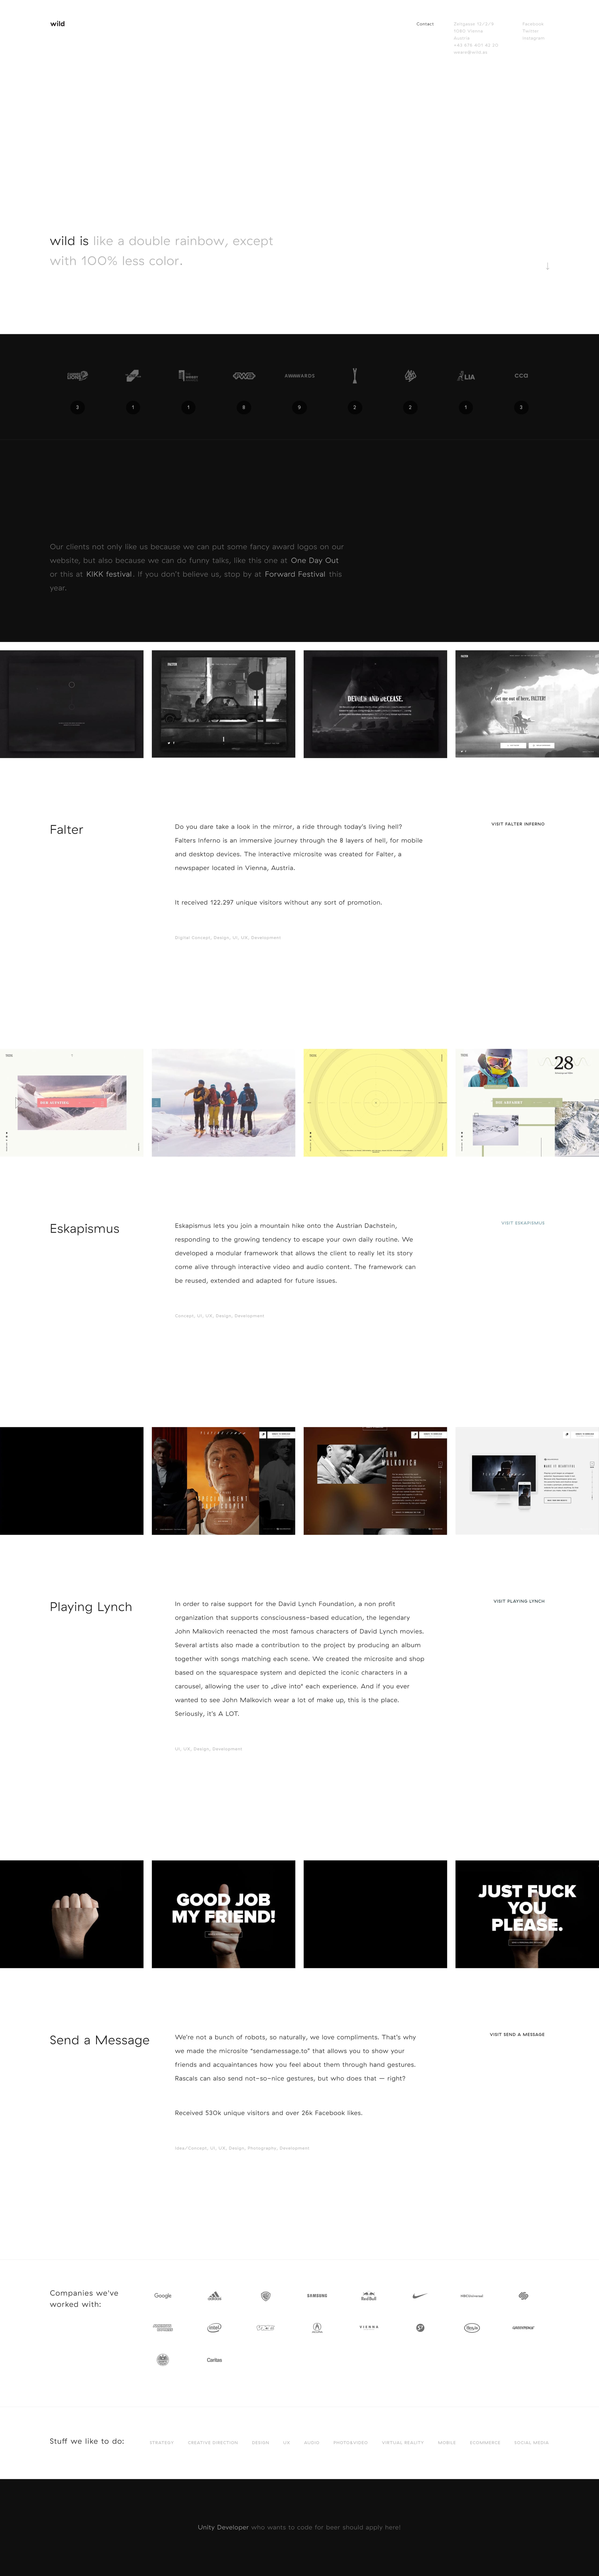 Minimal Super Long Scrolling One Page Redesign For Vienna Based Digital Agency Wild The Responsive Design Fills A Large Resolution Screen Really Well Intere